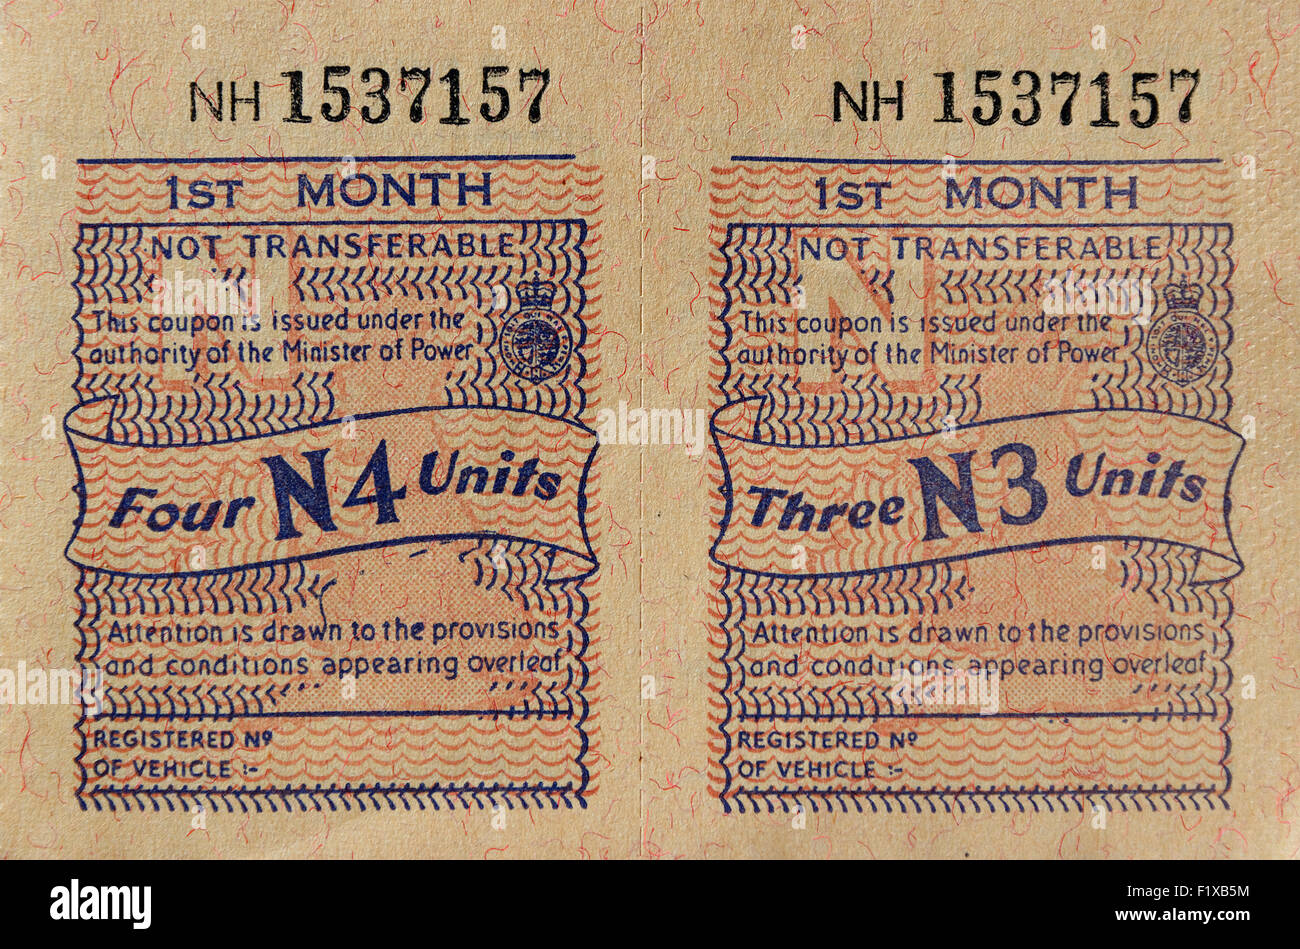 UK Petrol rationing coupons from 1973 - Stock Image